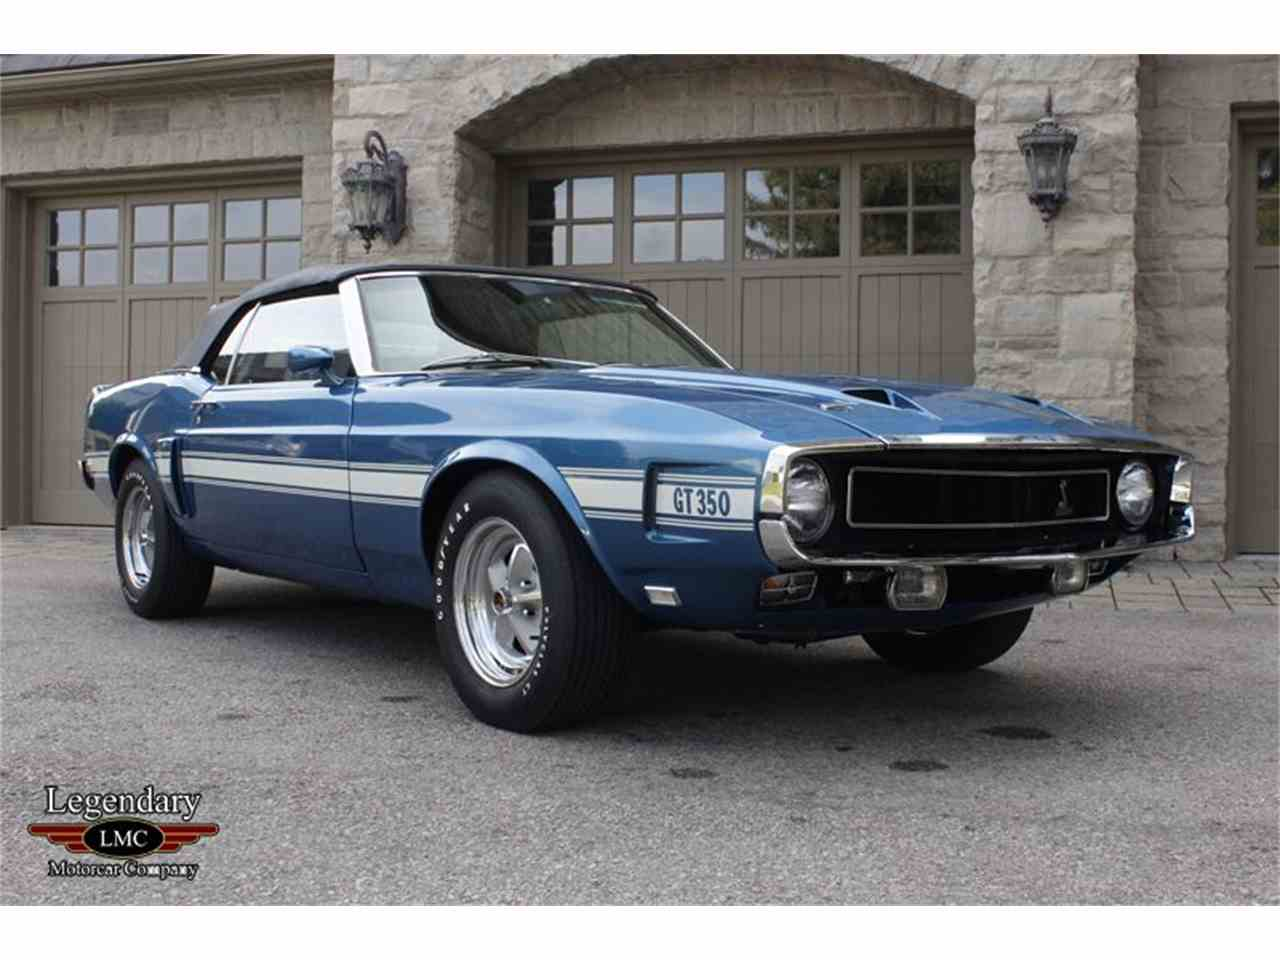 Large Picture of 1969 GT350 located in Ontario - $145,000.00 - LB22